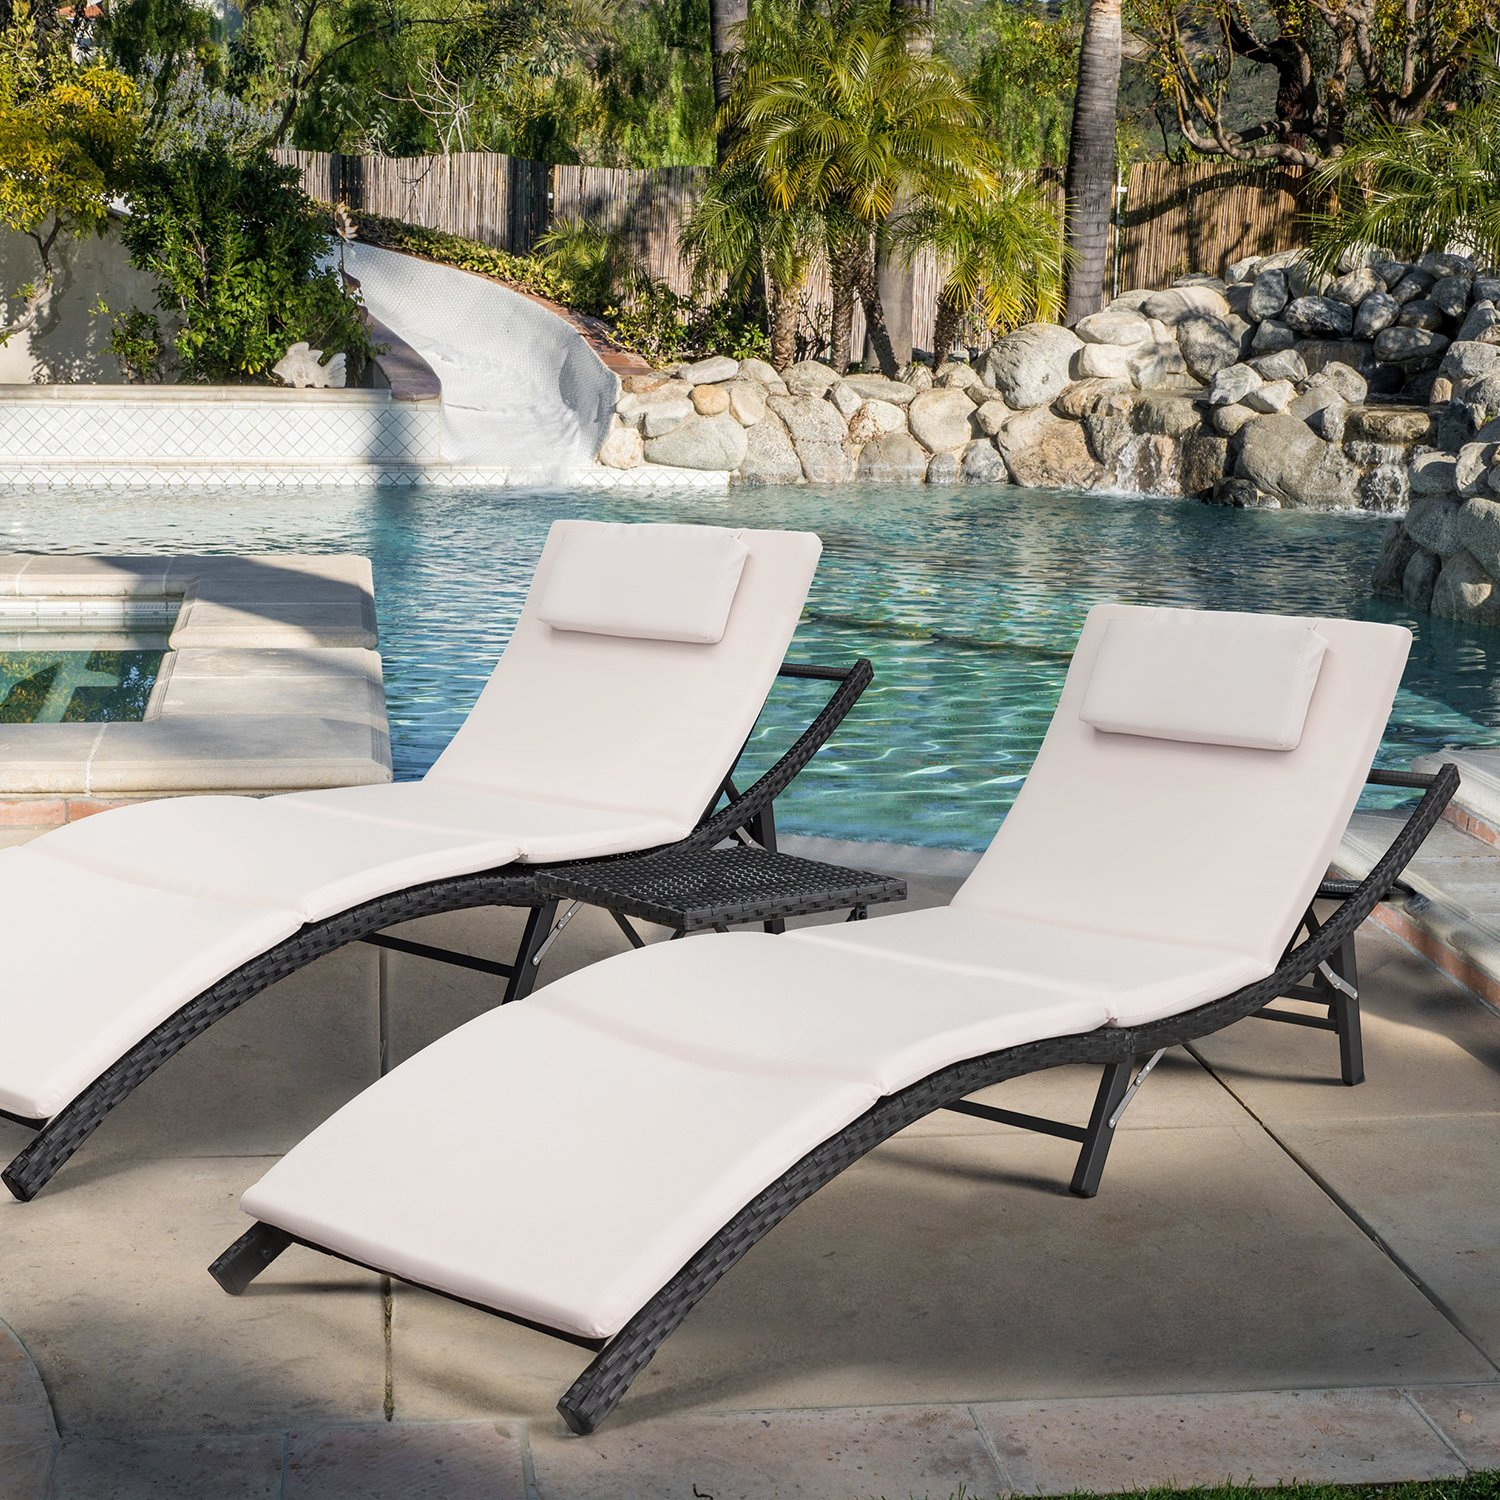 Amazon.com & Devoko Patio Chaise Lounge Sets Outdoor Rattan Adjustable Back 3 Pieces Cushioned Patio Folding Chaise Lounge with Folding Table (Beige Cushion)